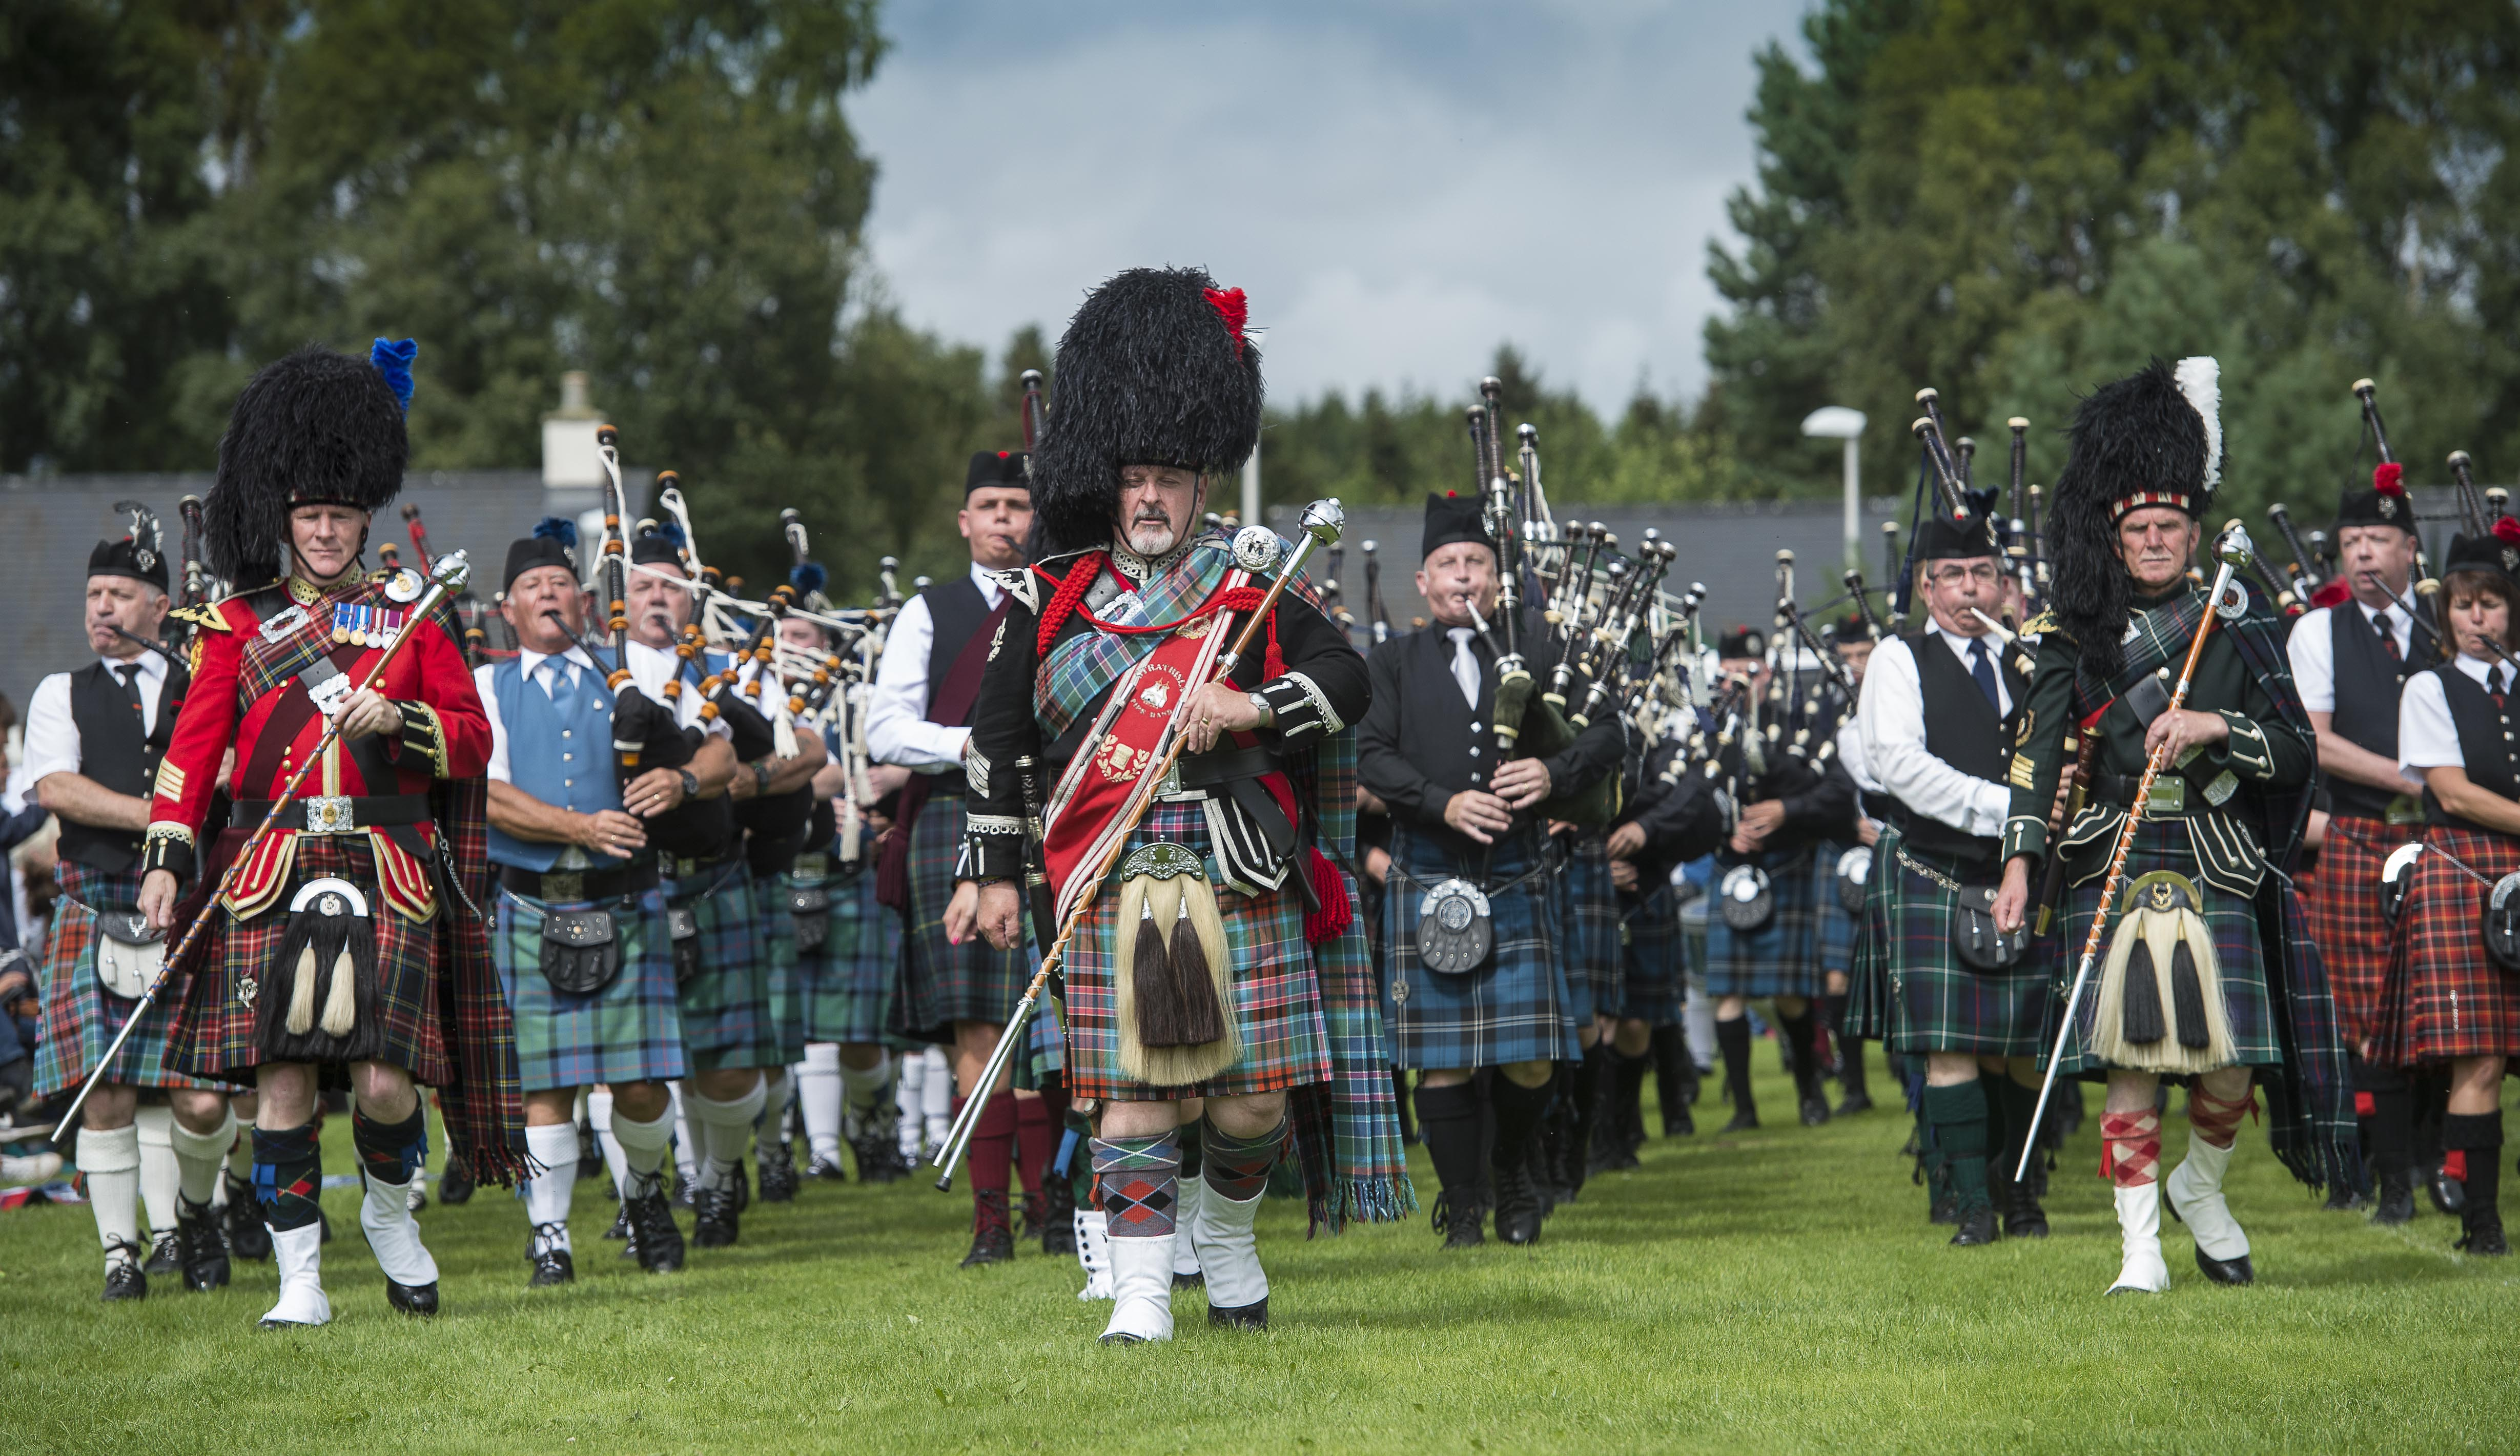 Pipe bands proved popular with the crowd